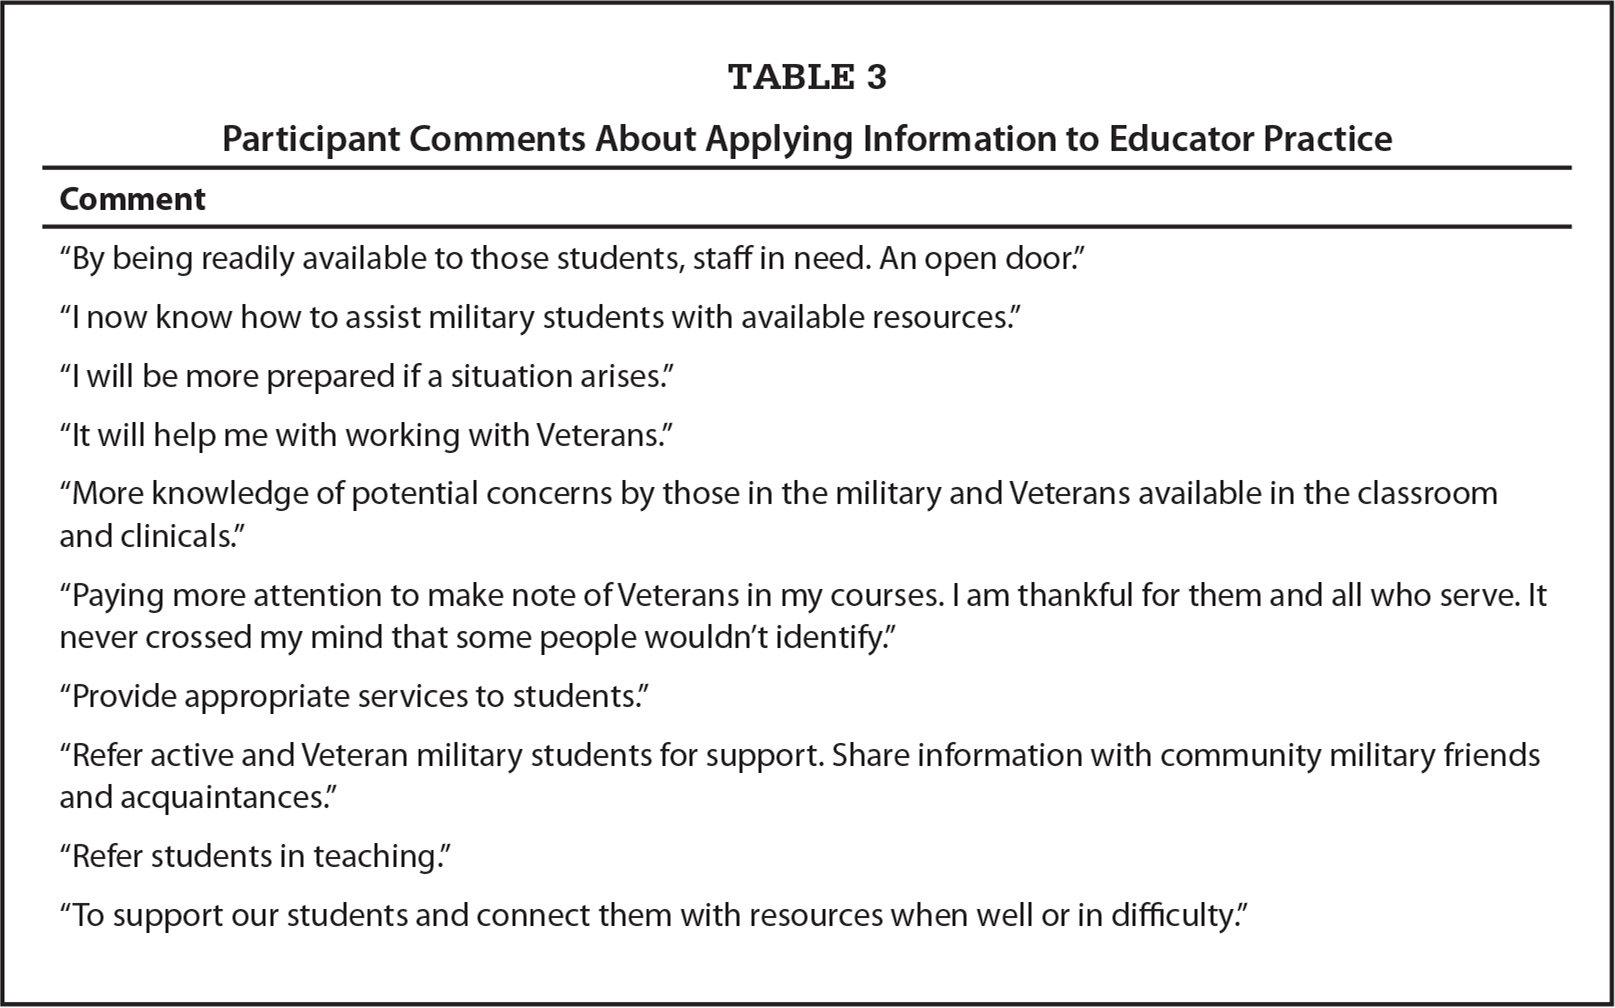 Participant Comments About Applying Information to Educator Practice